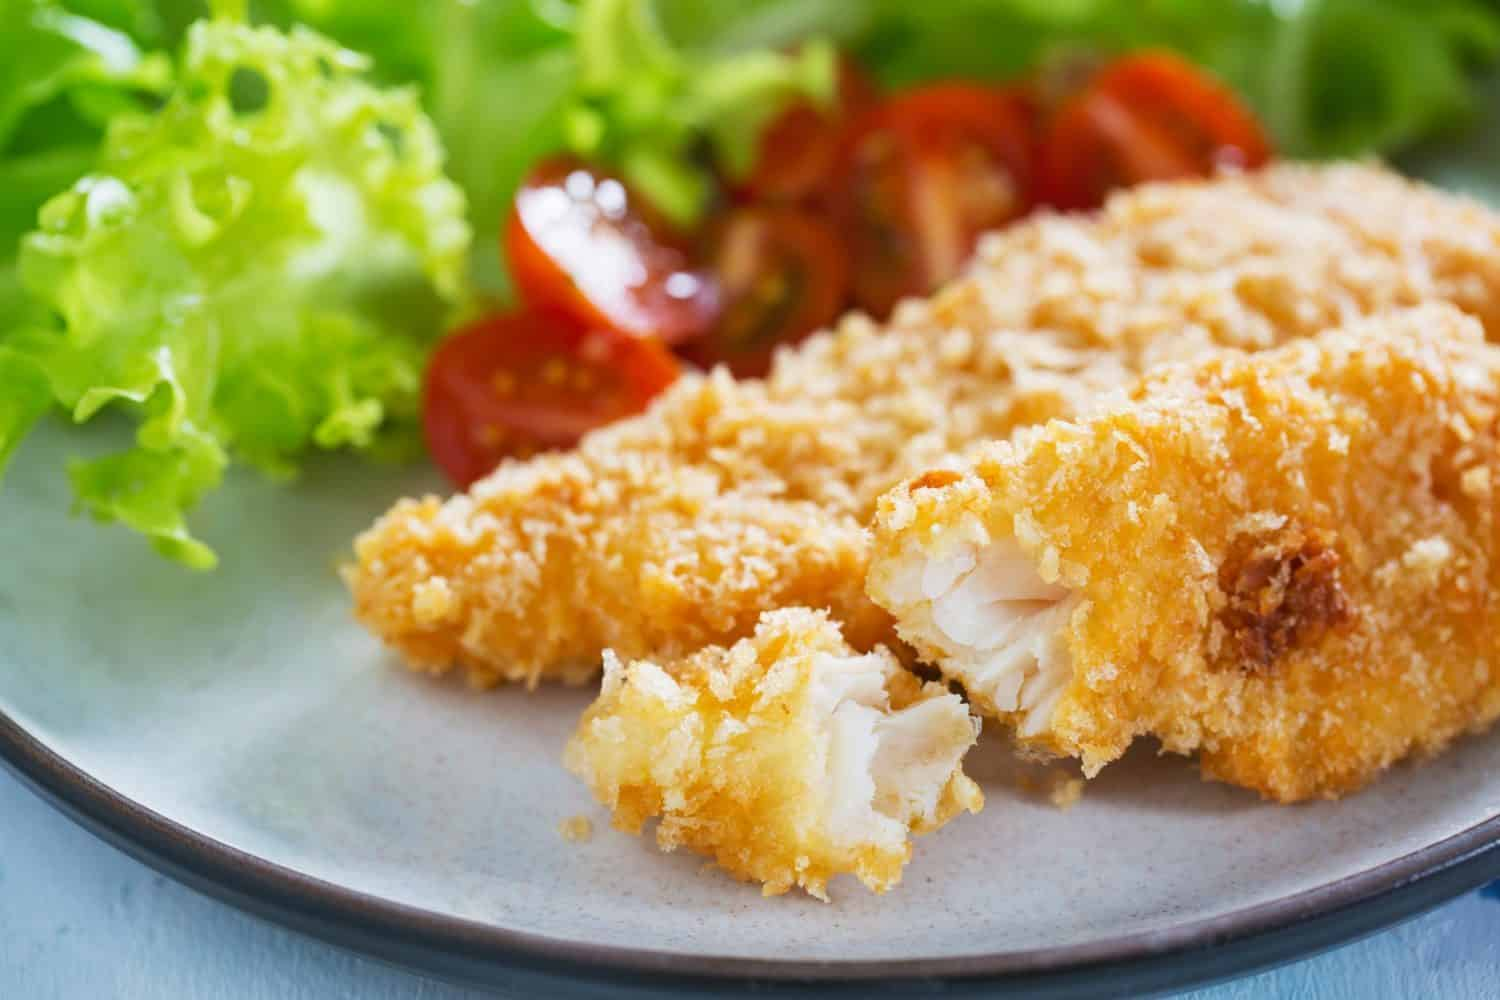 Crumbed Fish Fillet